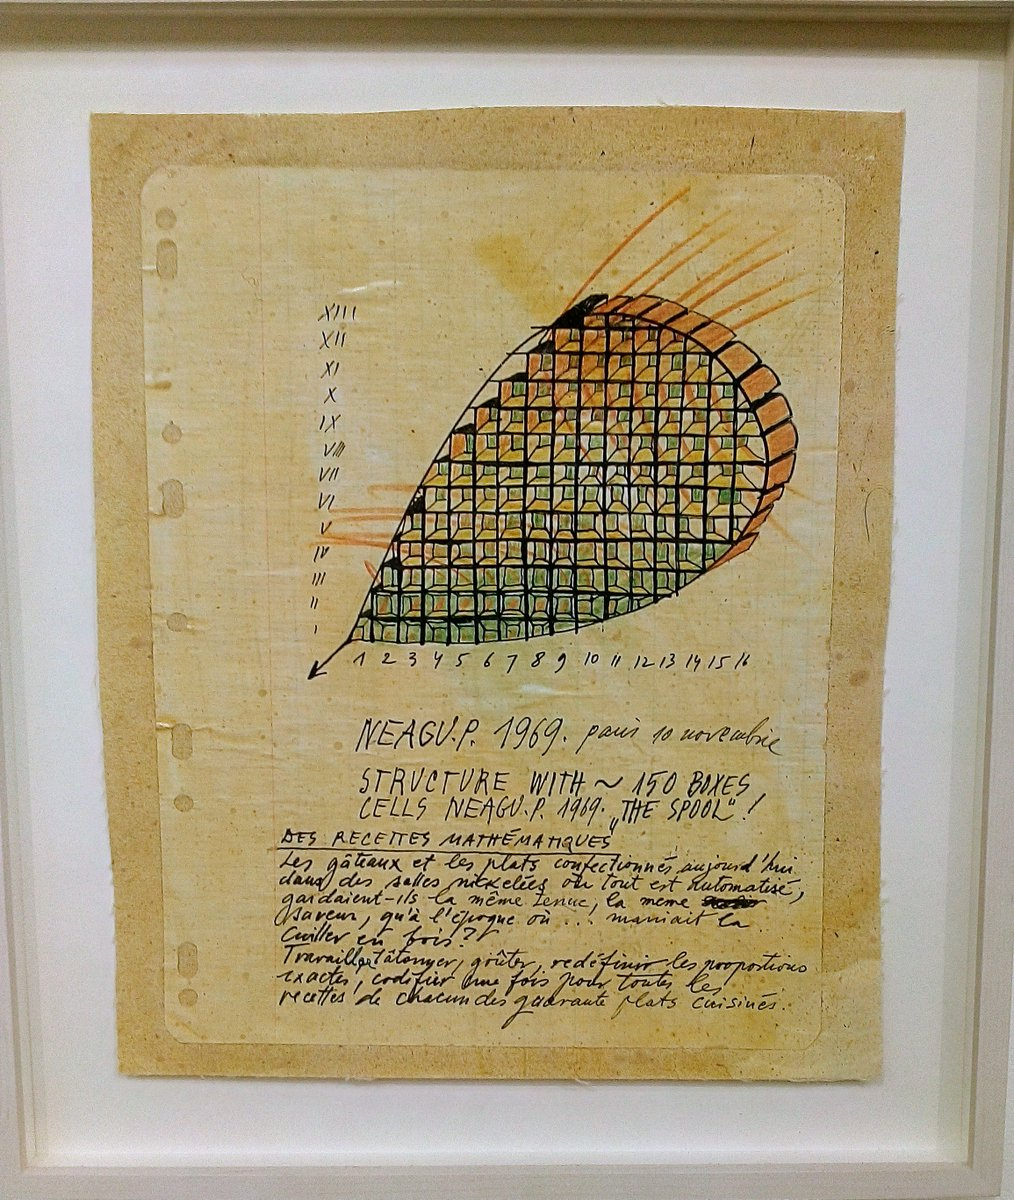 Excited to see these Paul Neagu (1938-2004) pieces at @artbrussels. Neagu was a visionary and founded the Generative Art Group in 1973.  The group had five members, Neagu himself and four fictitious characters. <br>http://pic.twitter.com/sh6HnoDPuc